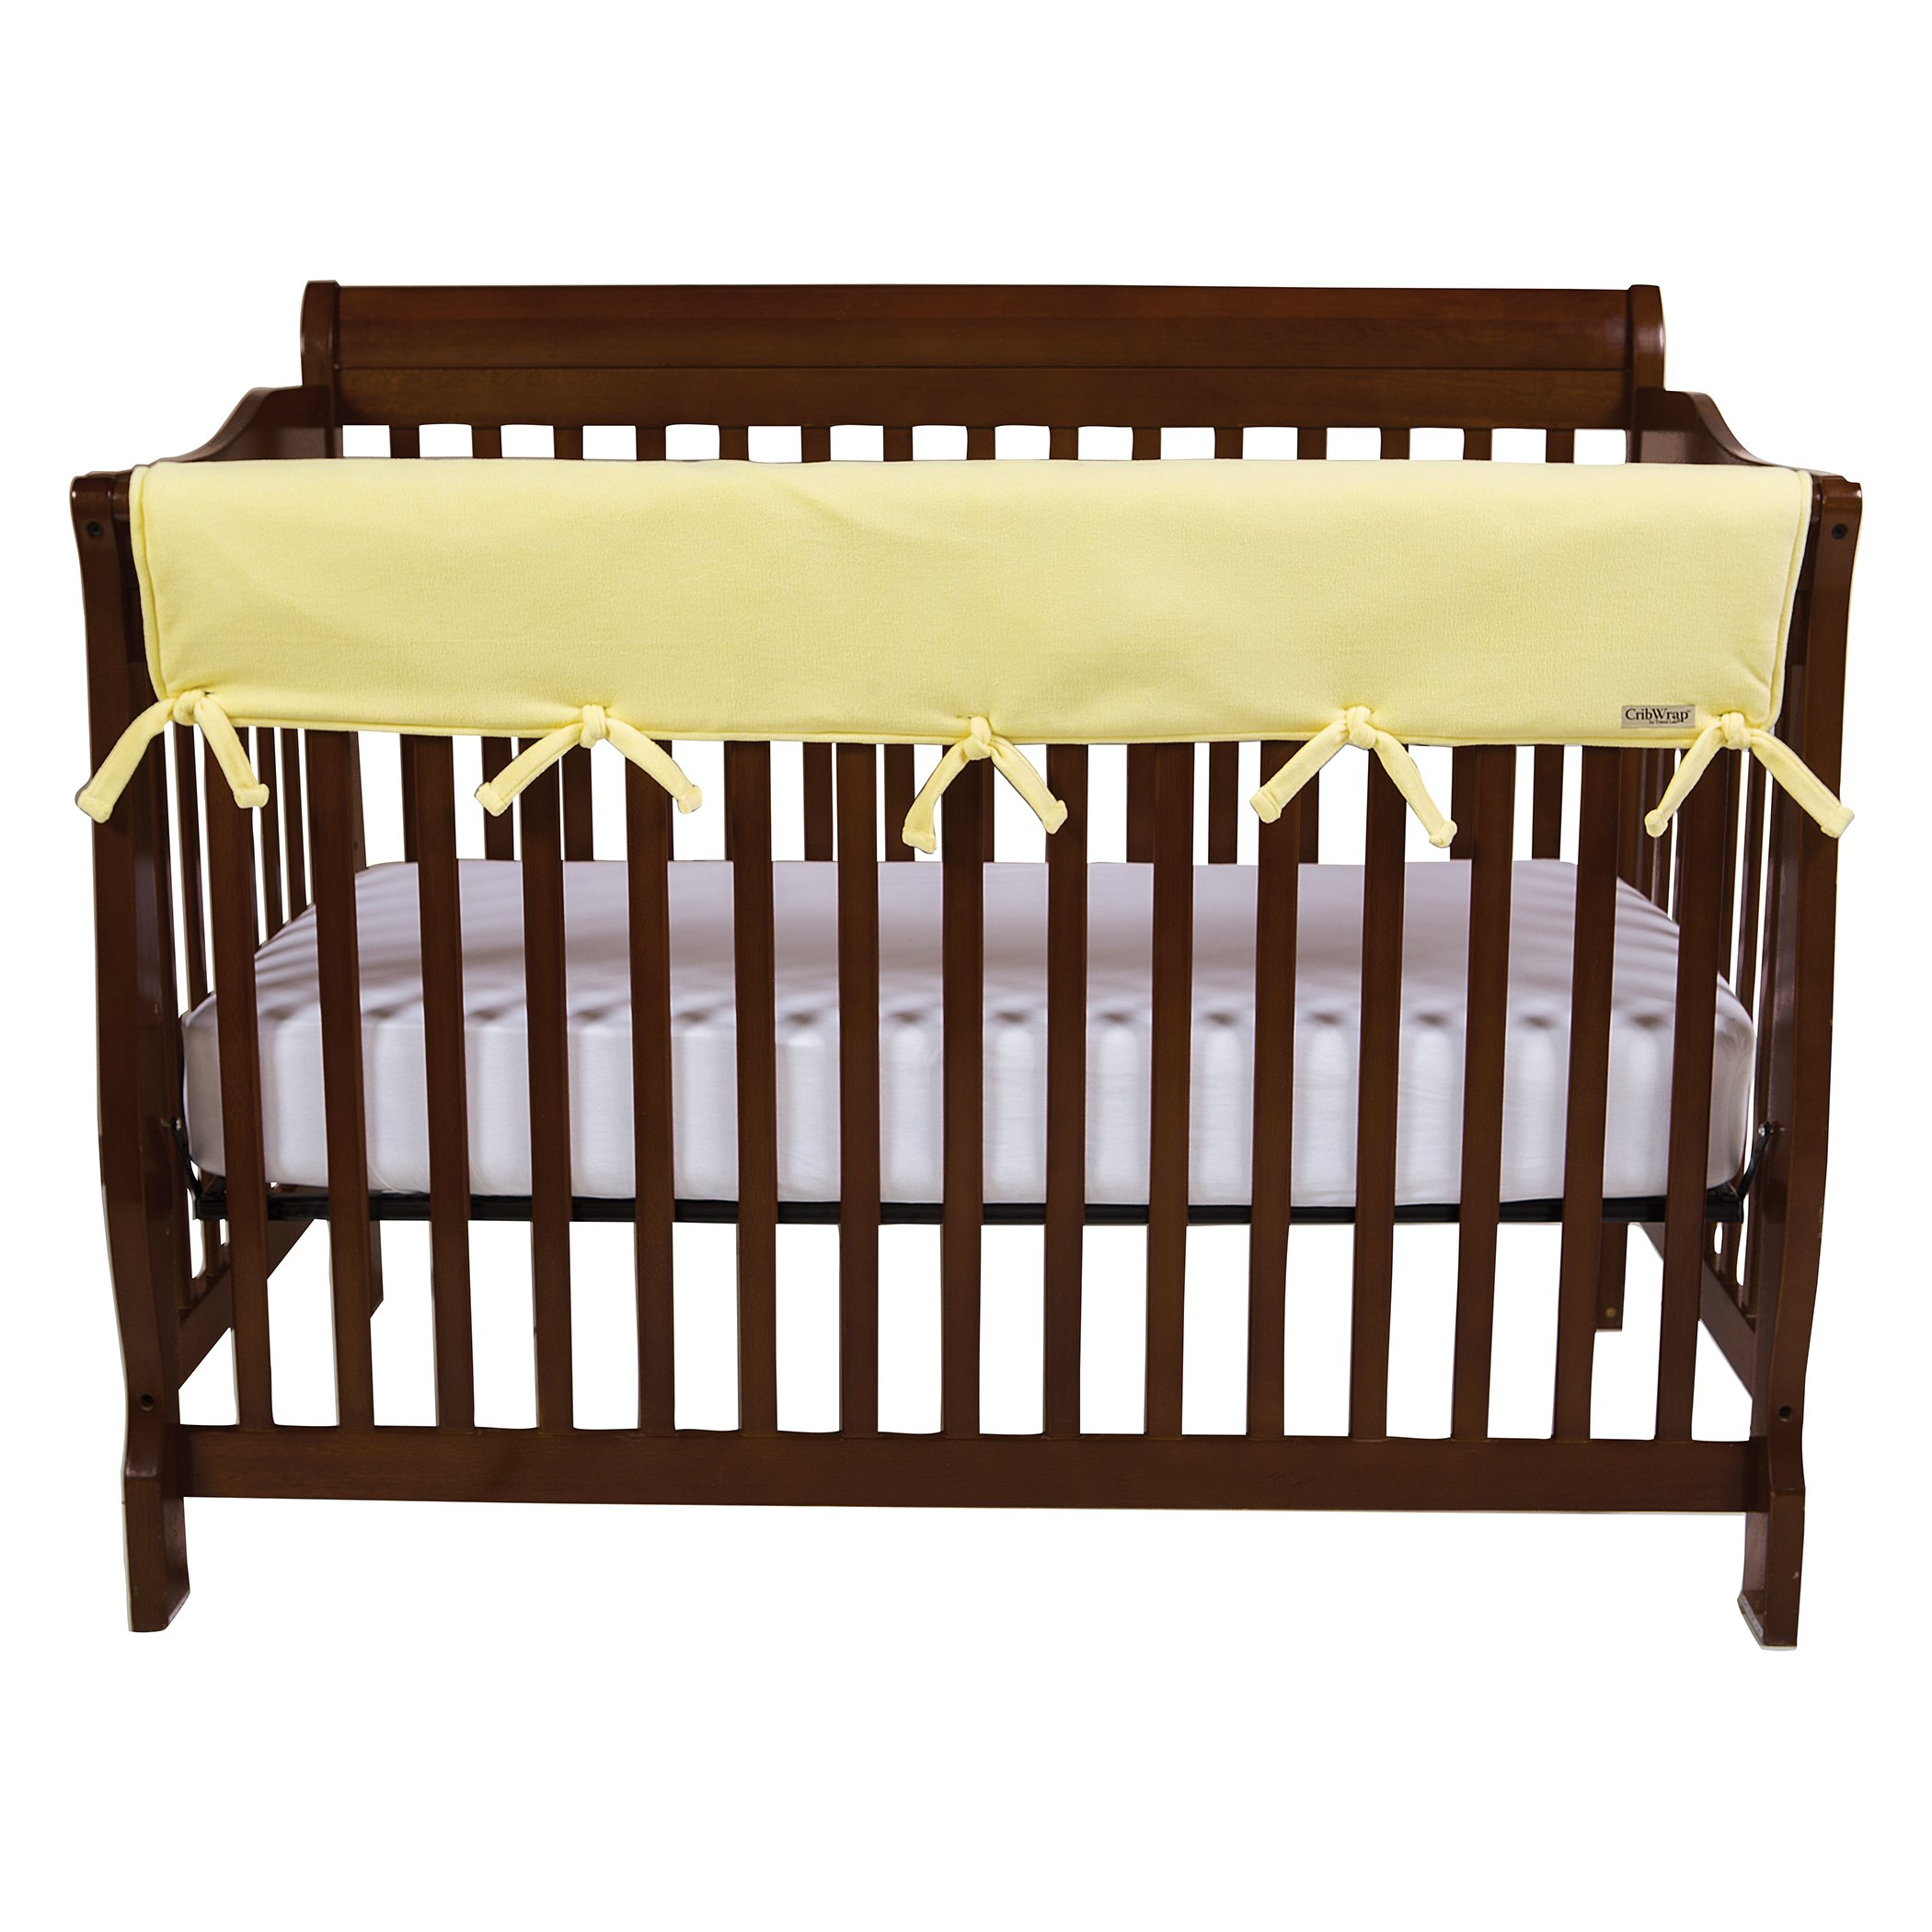 Trend Lab Waterproof CribWrap Rail Cover - For Wide Long Crib Rails Made to Fit Rails up to 18'' Around